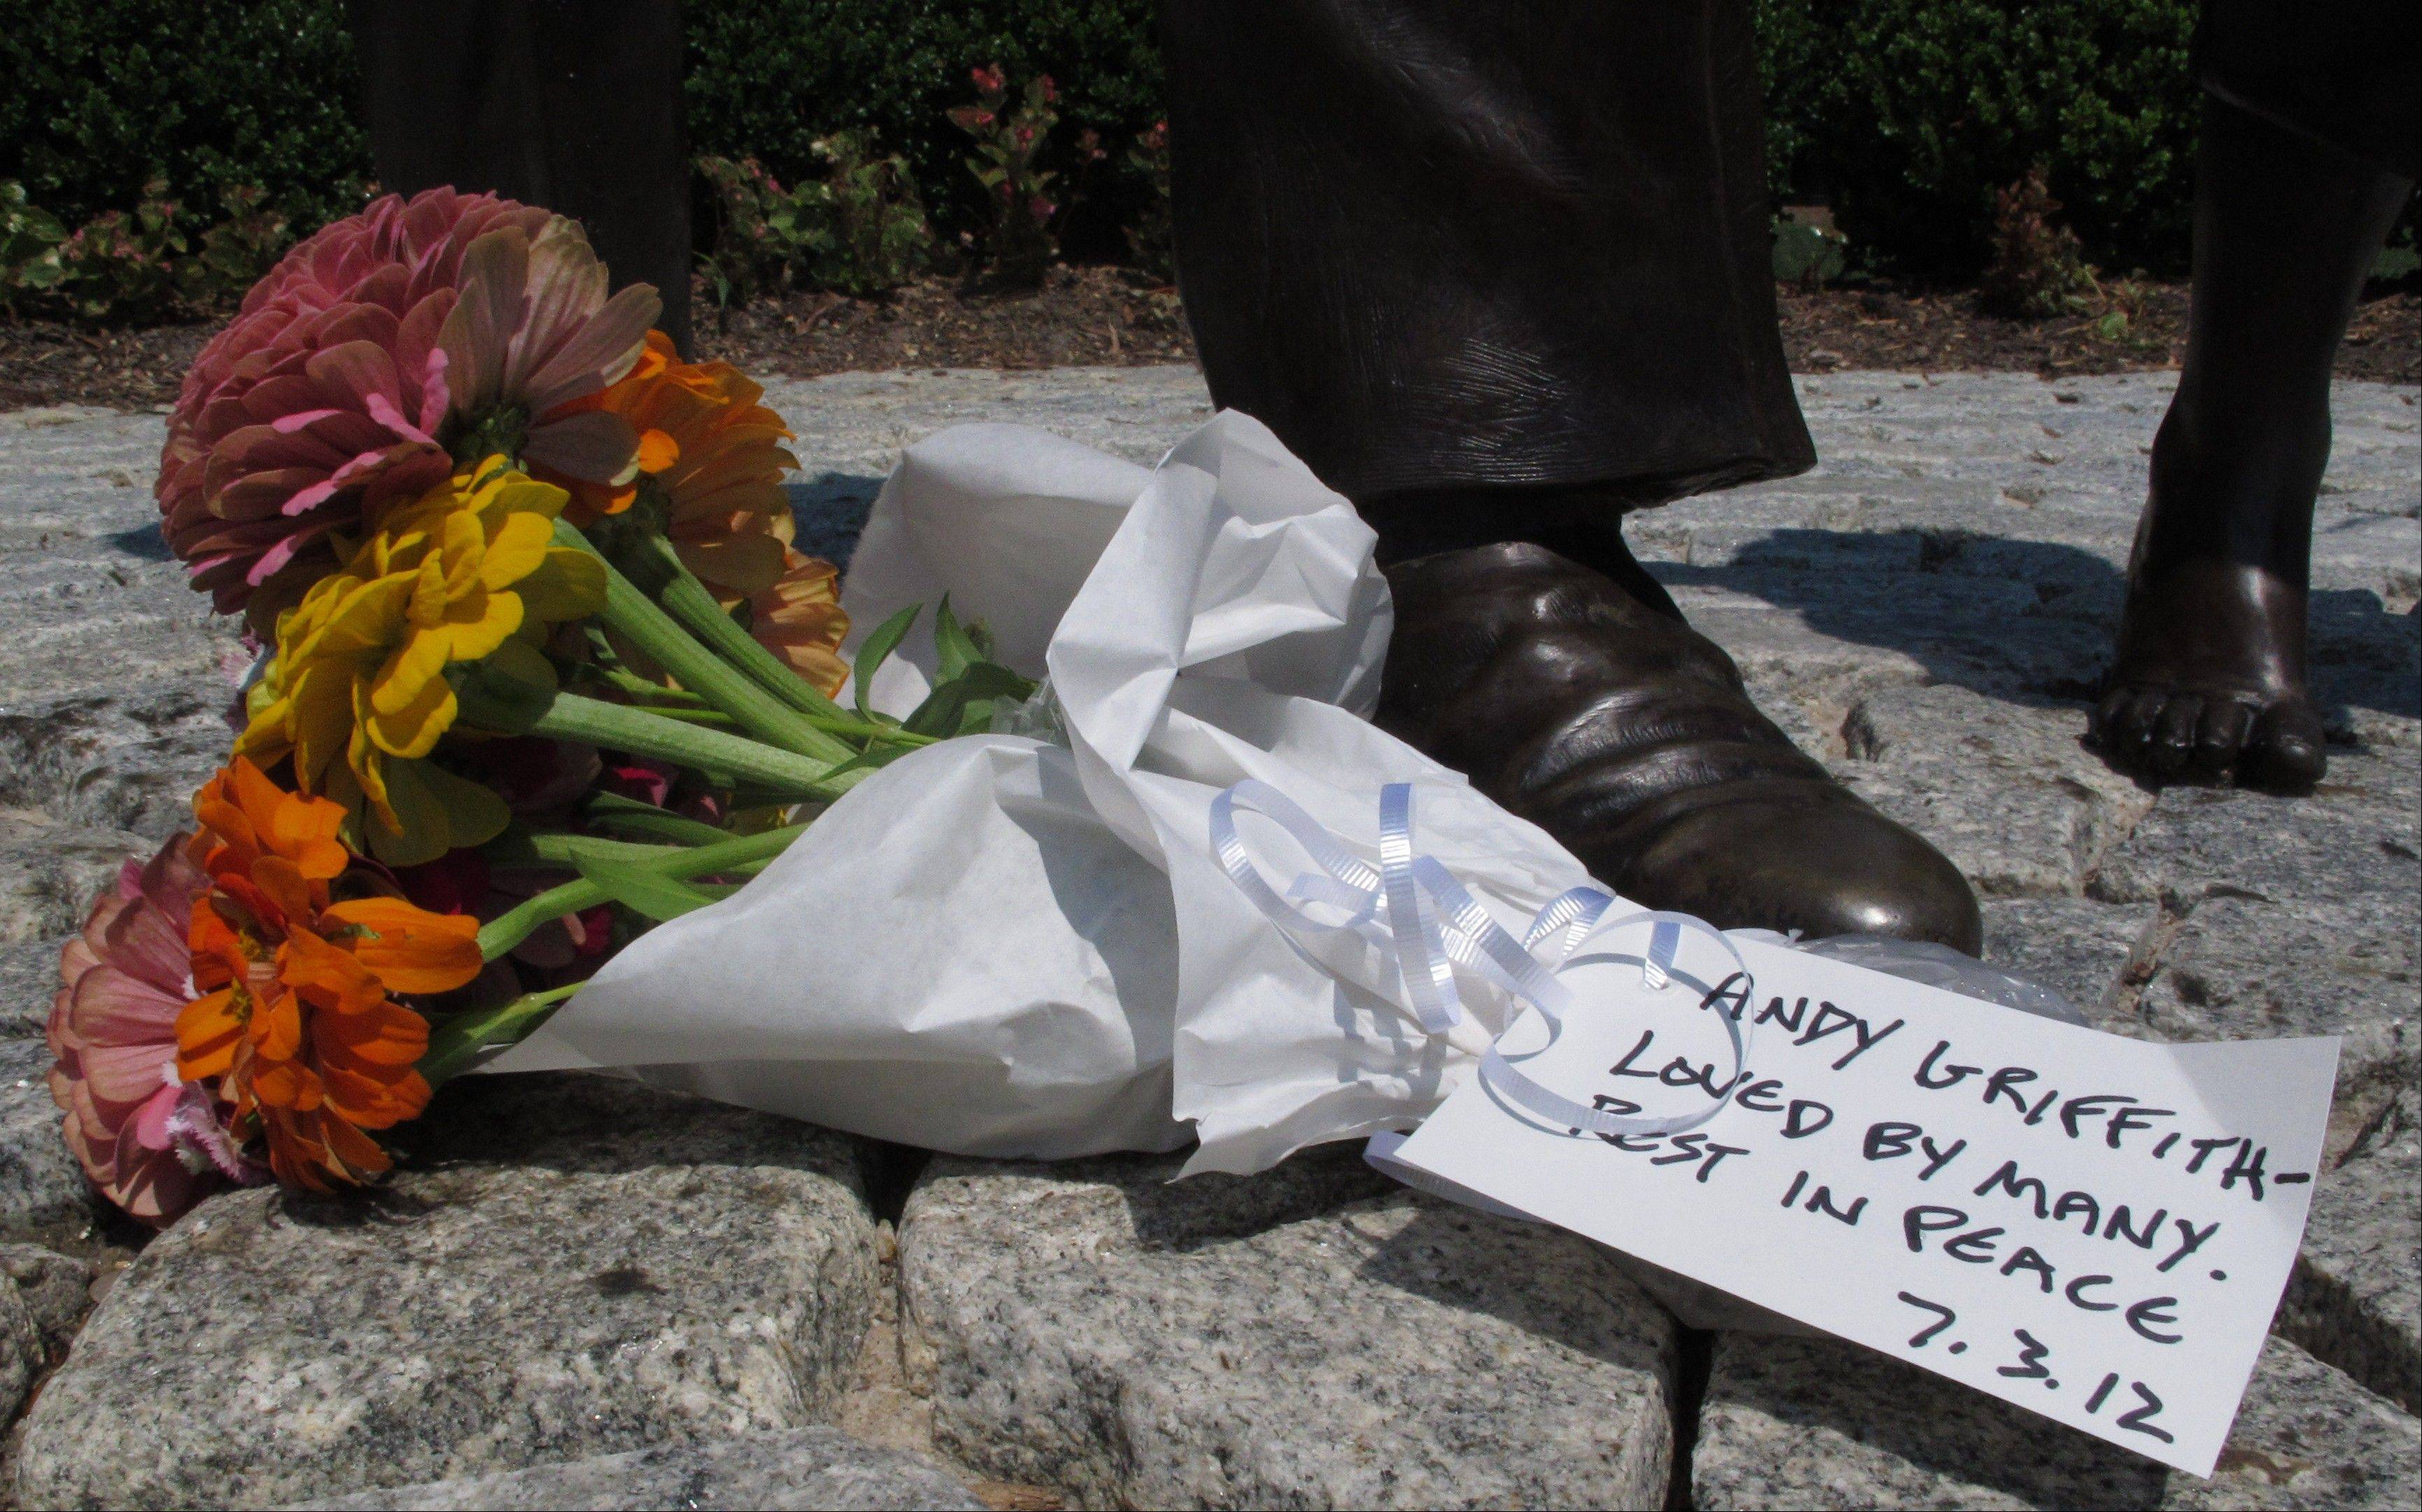 Well-wishers often place bouquets of flowers at the foot of a statue of Andy Griffith at Pullen Park in Raleigh, N.C.